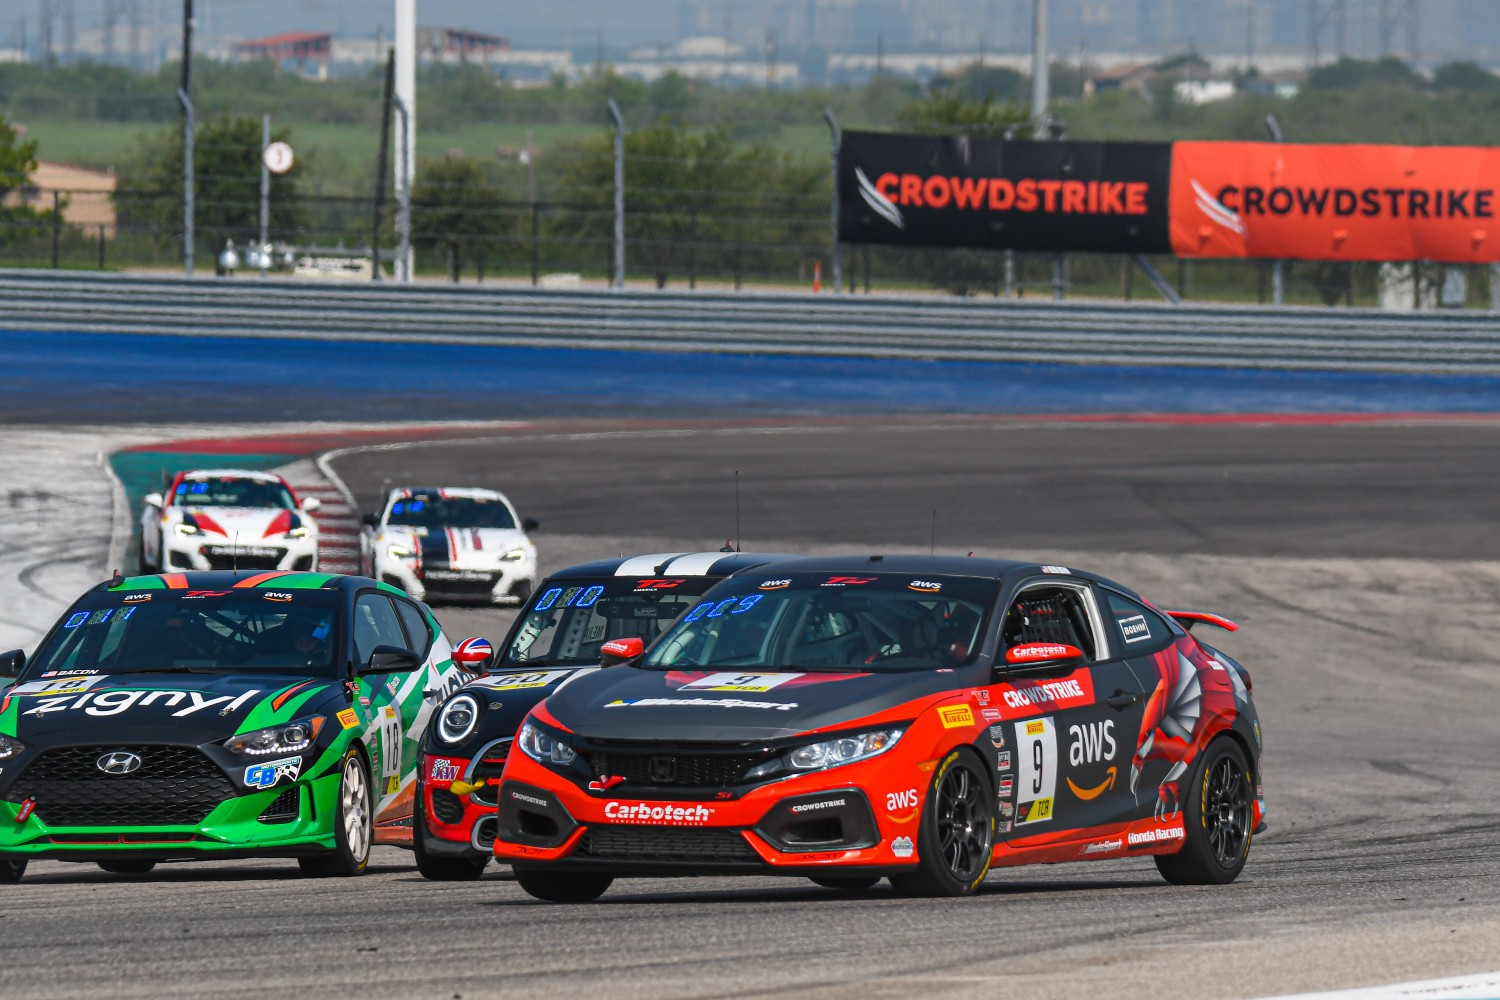 #9 Honda Civic Si of Kevin Boehm, Boehm Racing, TCA, SRO America, Circuit of the Americas, Austin TX, September 2020.  | SRO Motorsports Group